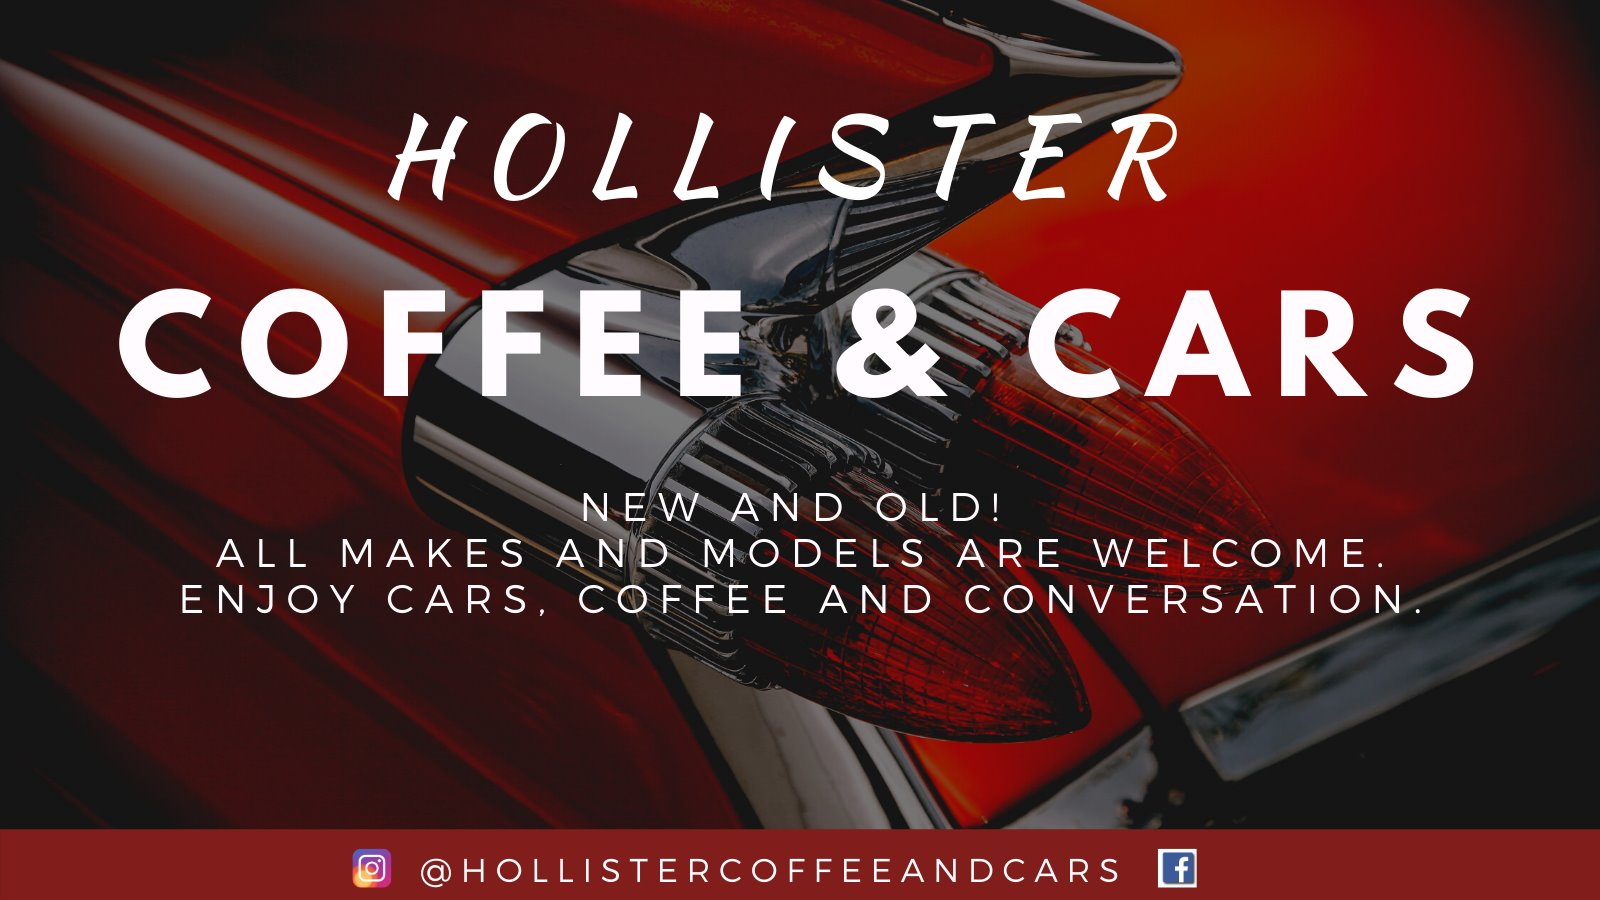 Hollister Coffee and Cars